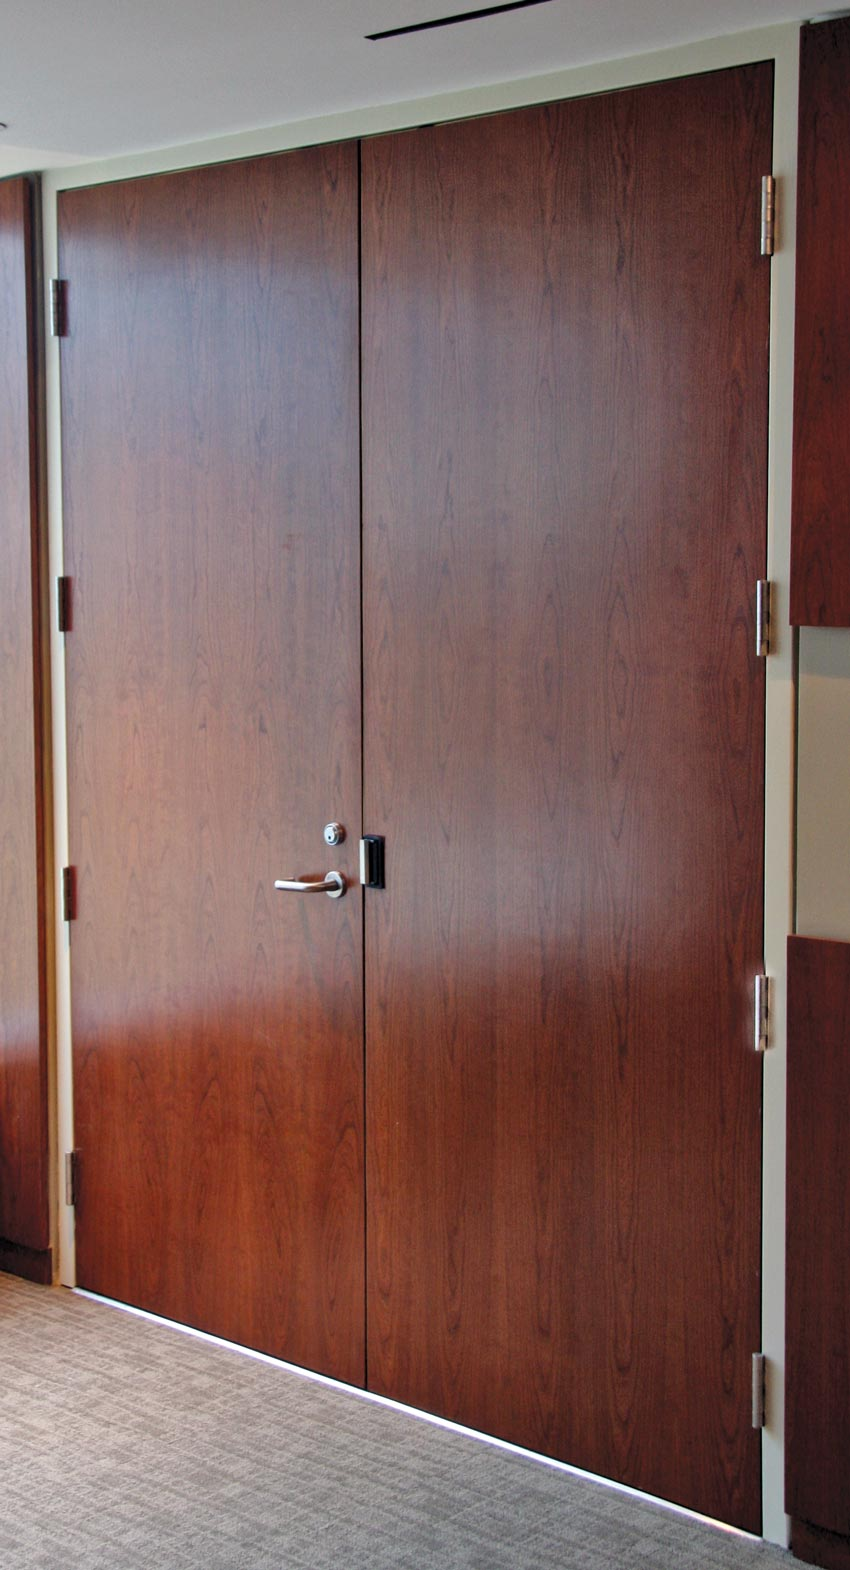 Photo of an acoustic wood door.